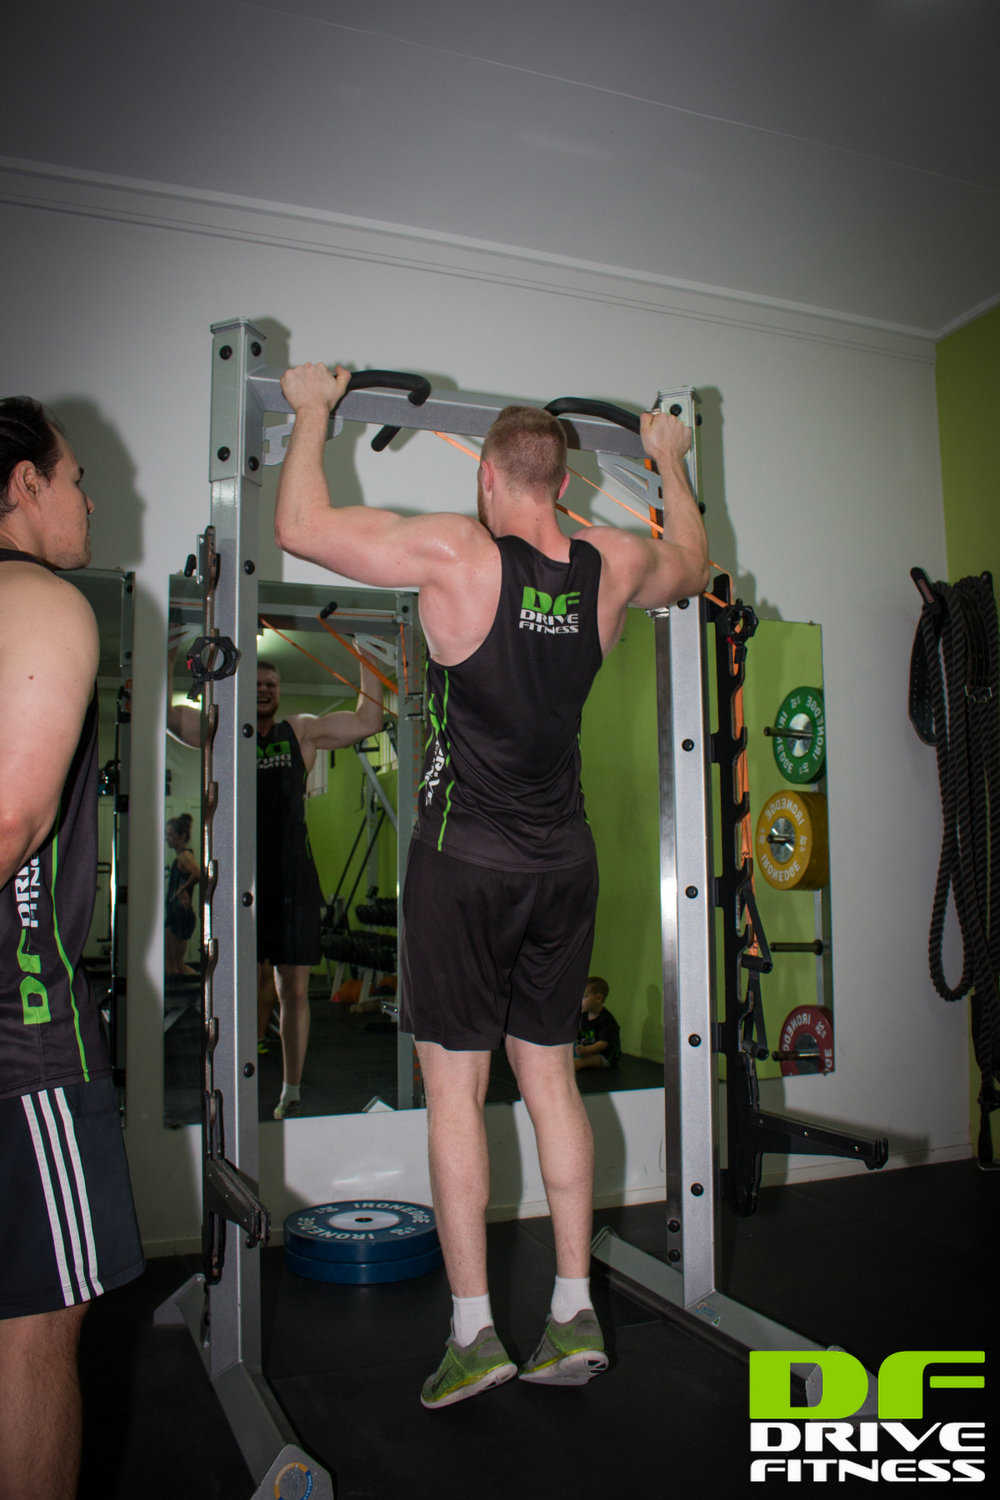 Drive-Fitness-personal-training-brisbane-christmas-workout-2017 (17 of 54).jpg